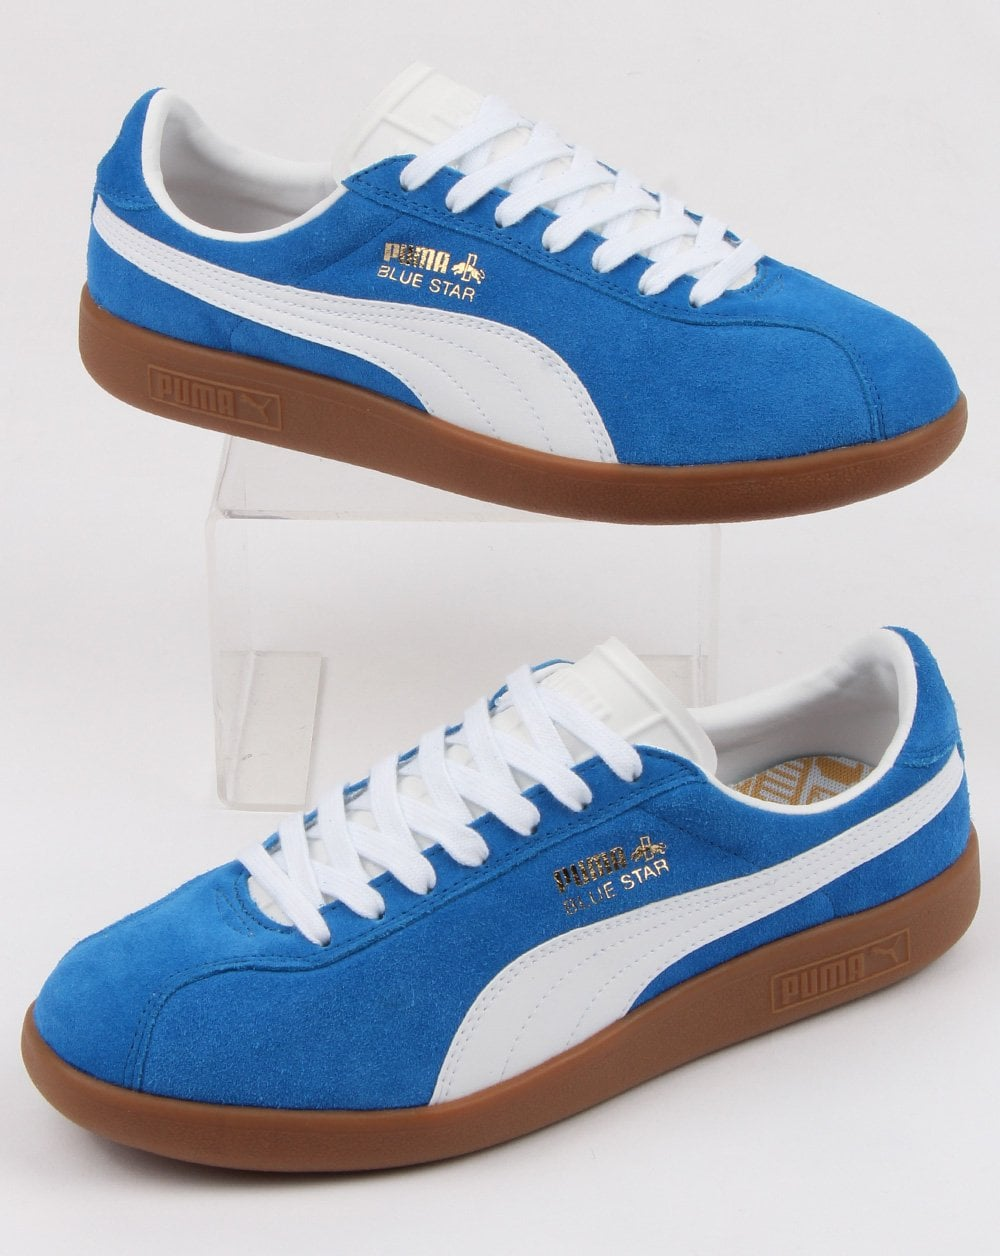 74f8641e023b Puma Puma Blue Star Trainer Royal Blue white